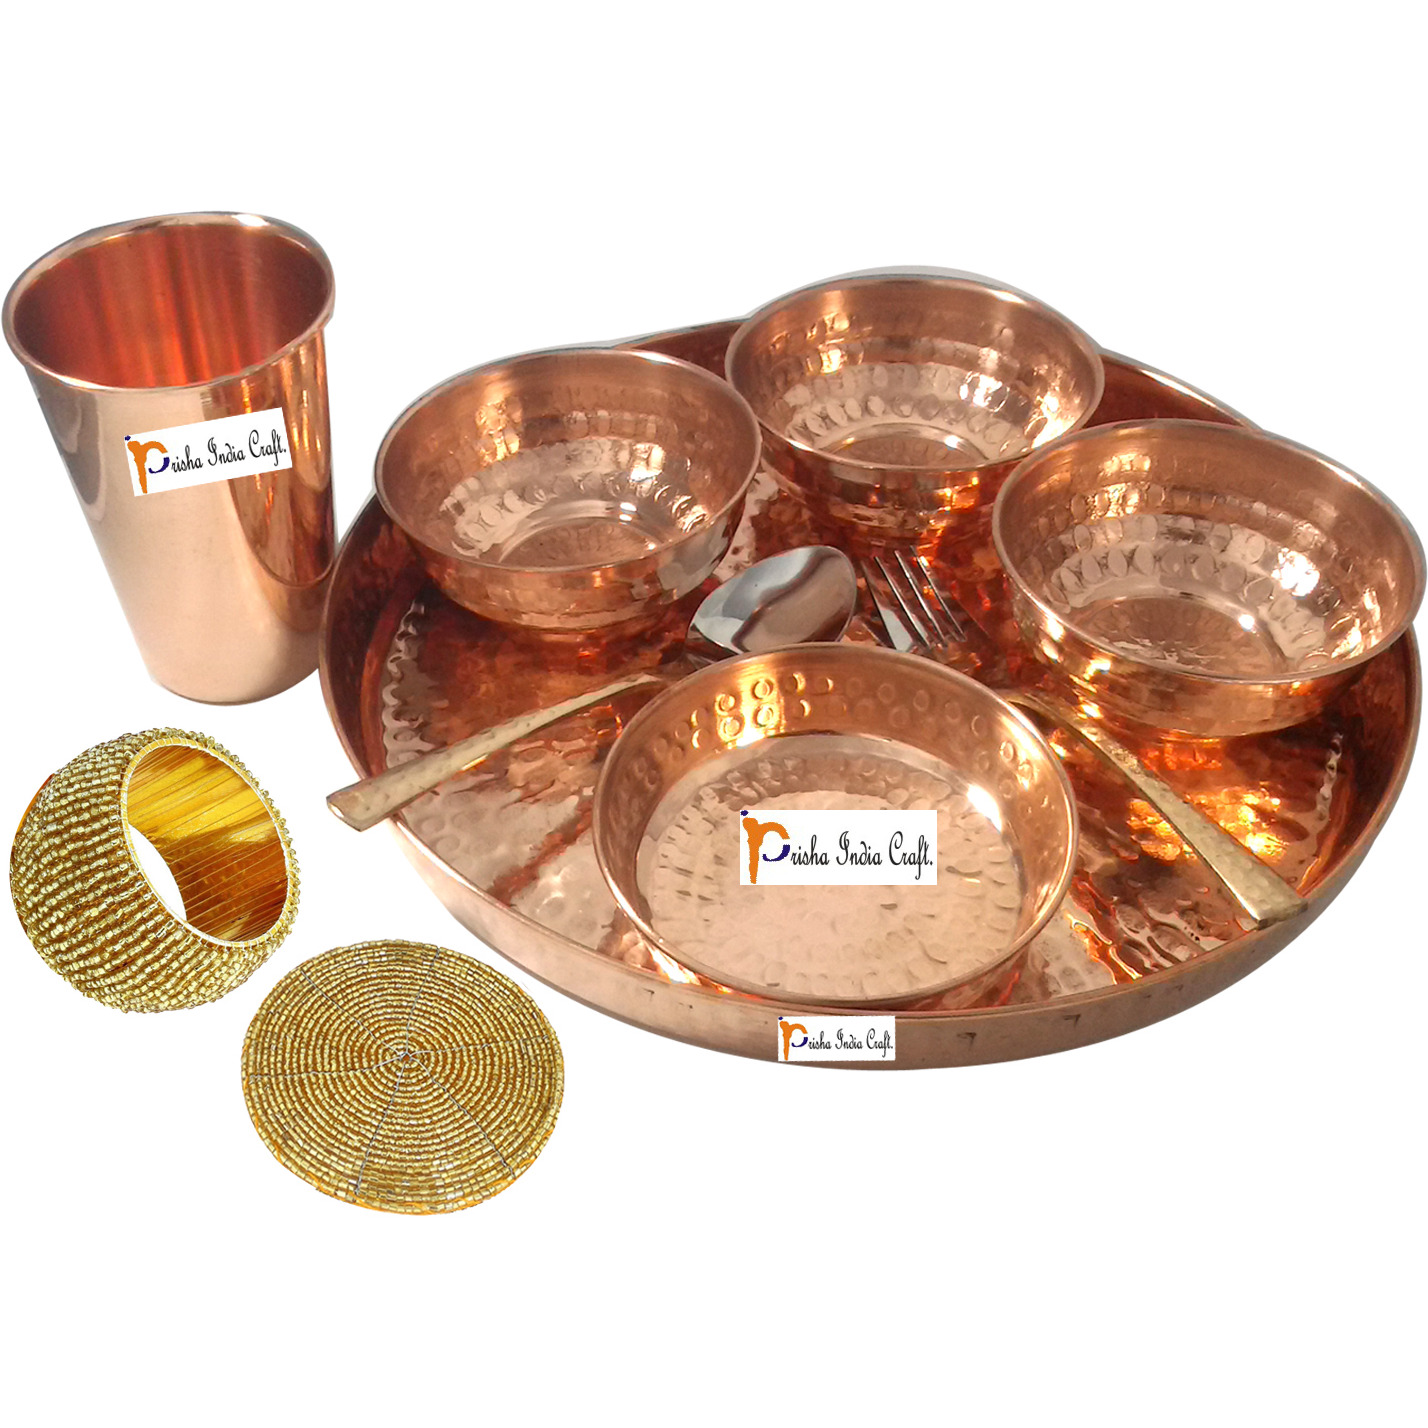 Set of 6 Prisha India Craft B. Dinnerware Pure Copper Thali Set Dia 12  Traditional Dinner Set of Plate, Bowl, Spoons, Glass with Napkin ring and Coaster - Christmas Gift